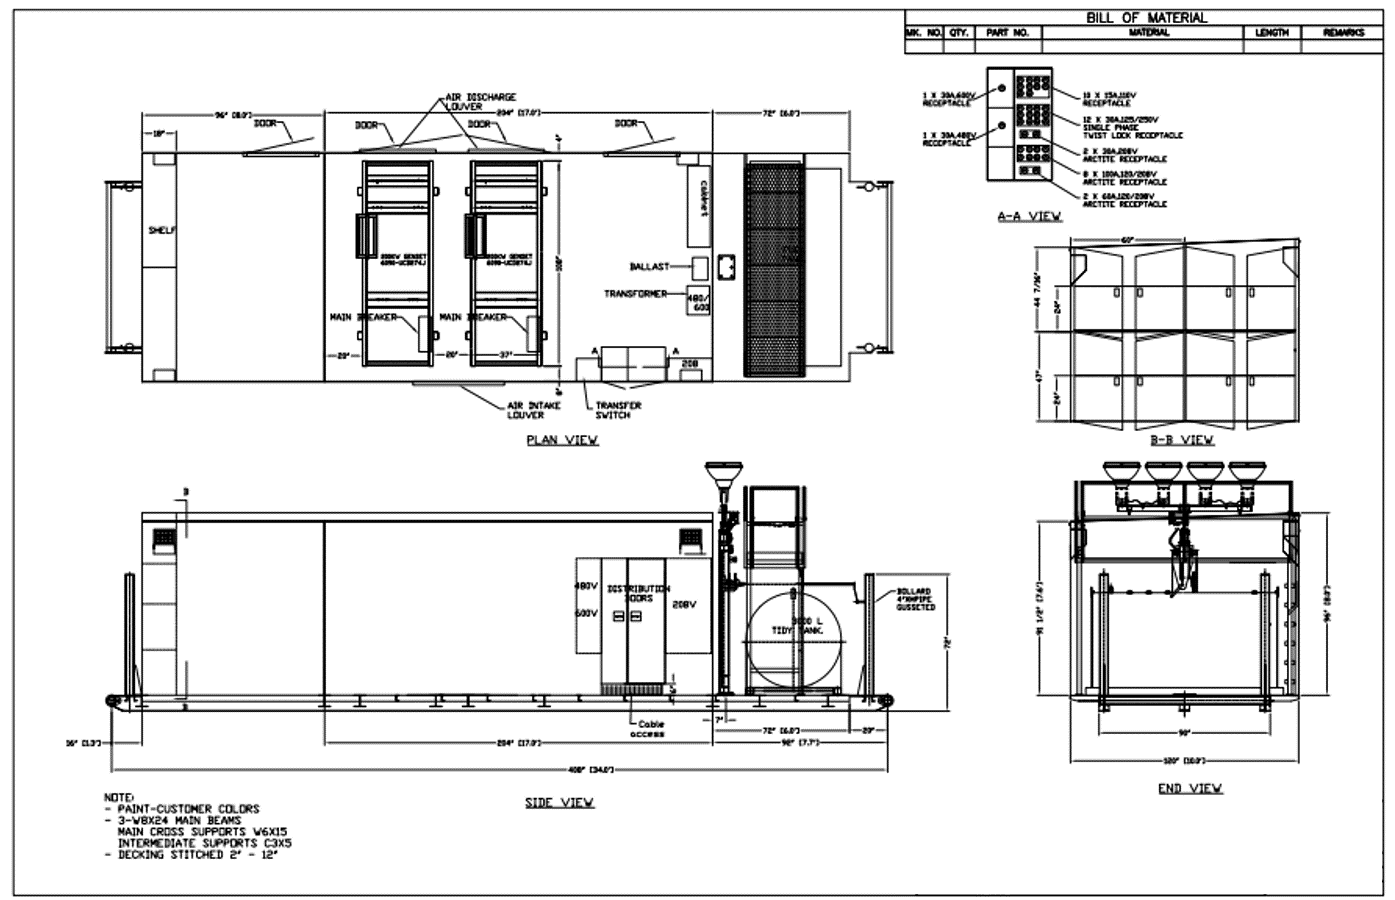 Engineering Frontier Power Products Electrical Drawing 1 R Page Edm 2